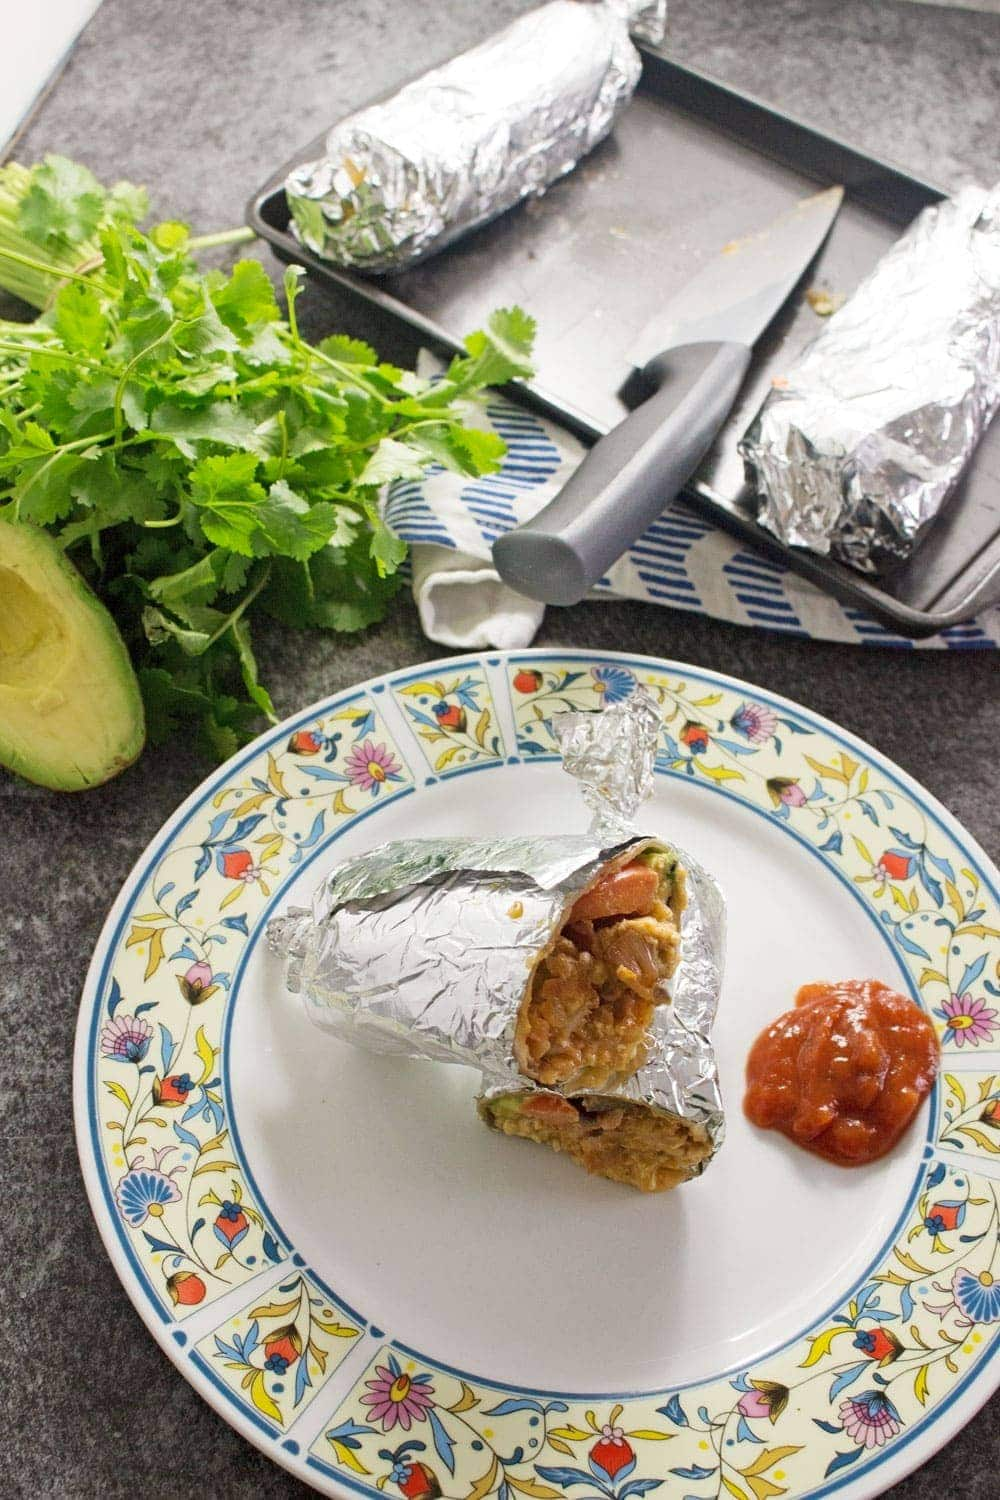 This breakfast burrito stuffed with bacon, egg and hash browns give you the perfect start to the day! They're an impressive but easy to make breakfast.